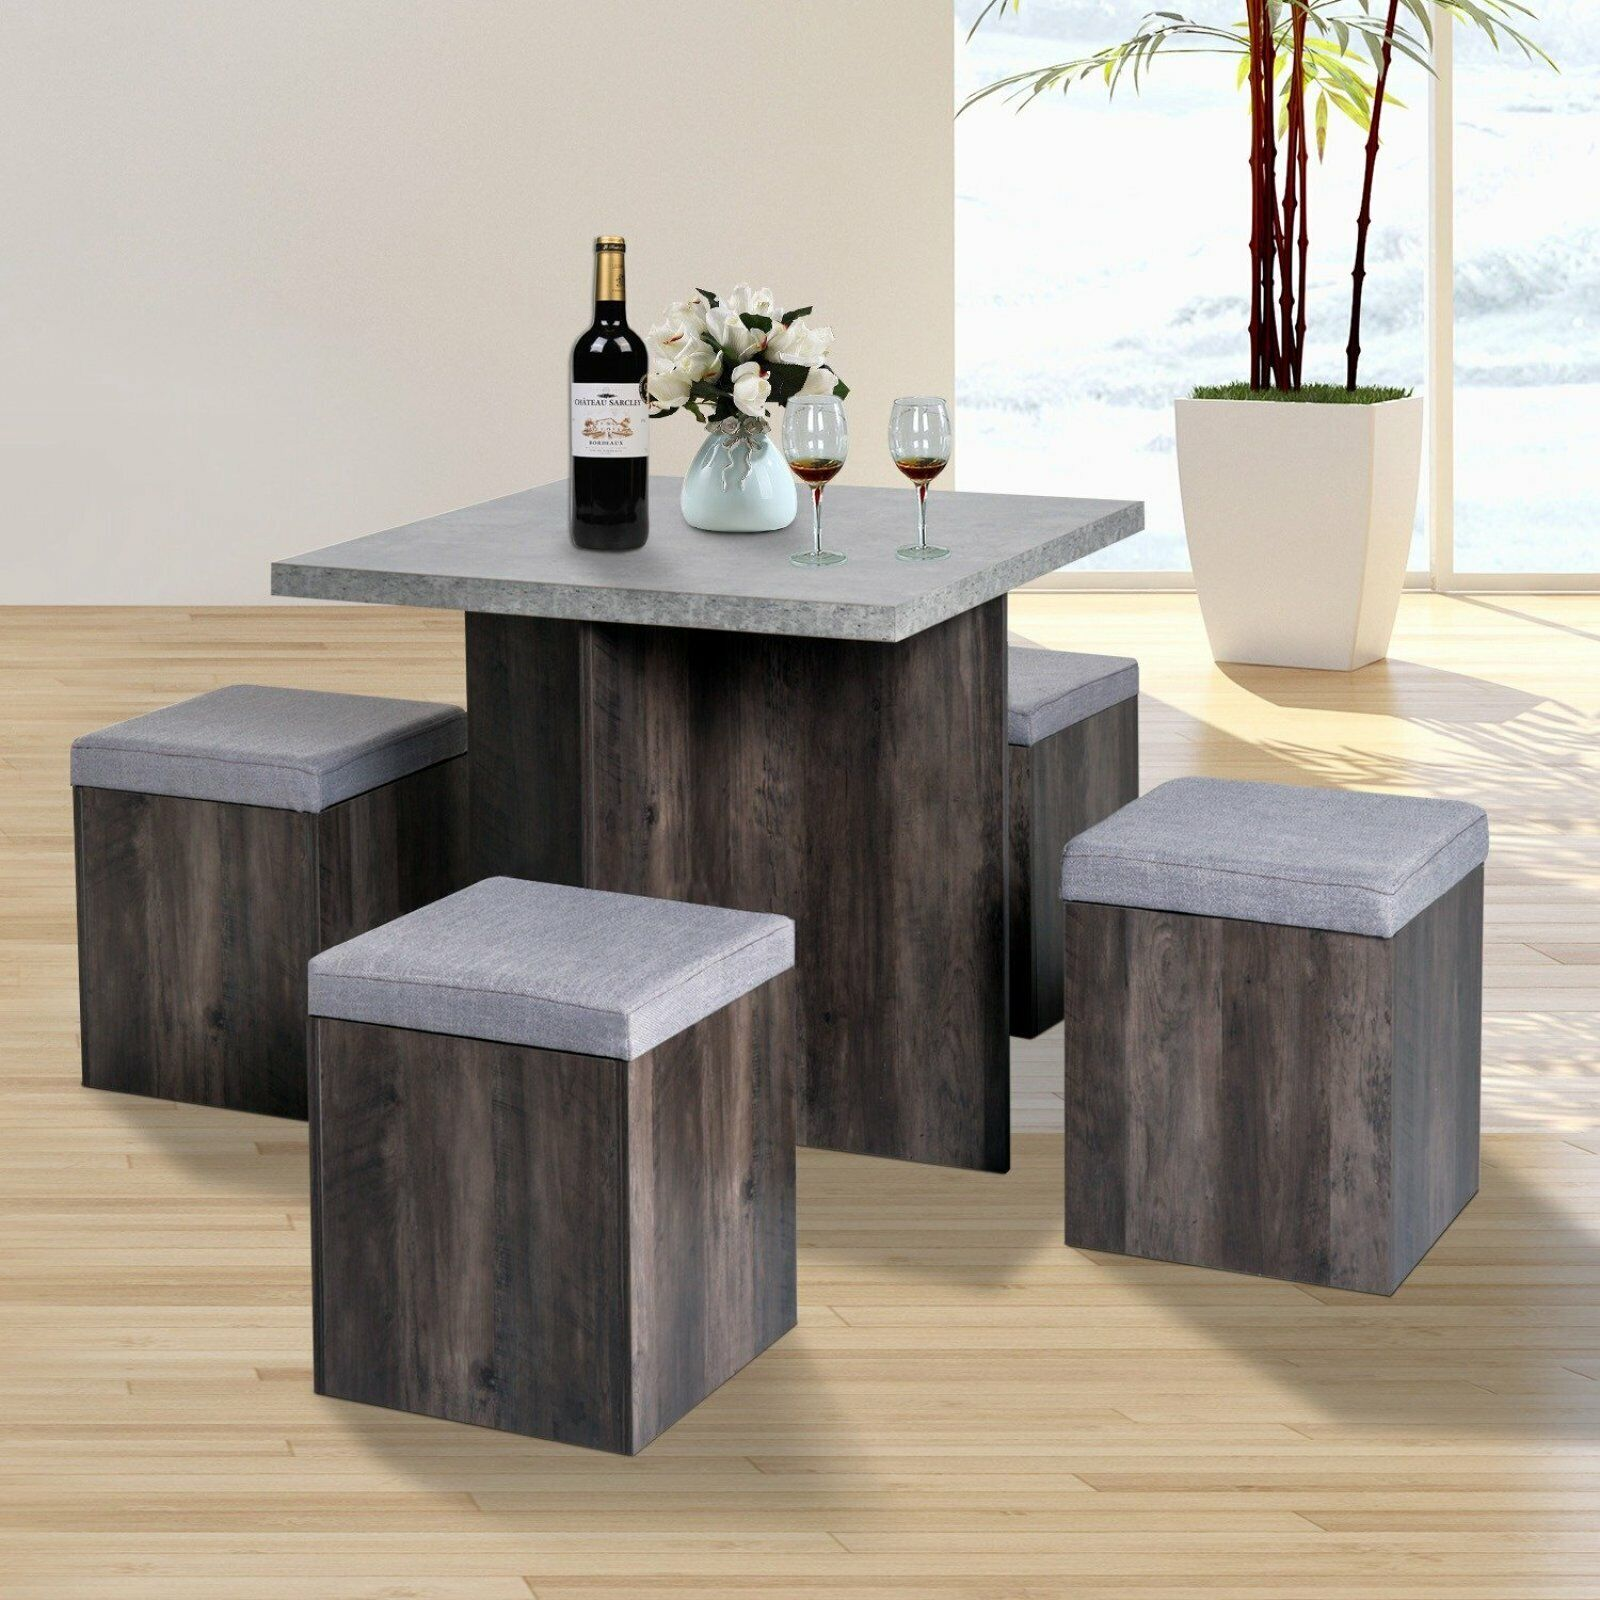 Compact Space Saving Table & 2 Chairs